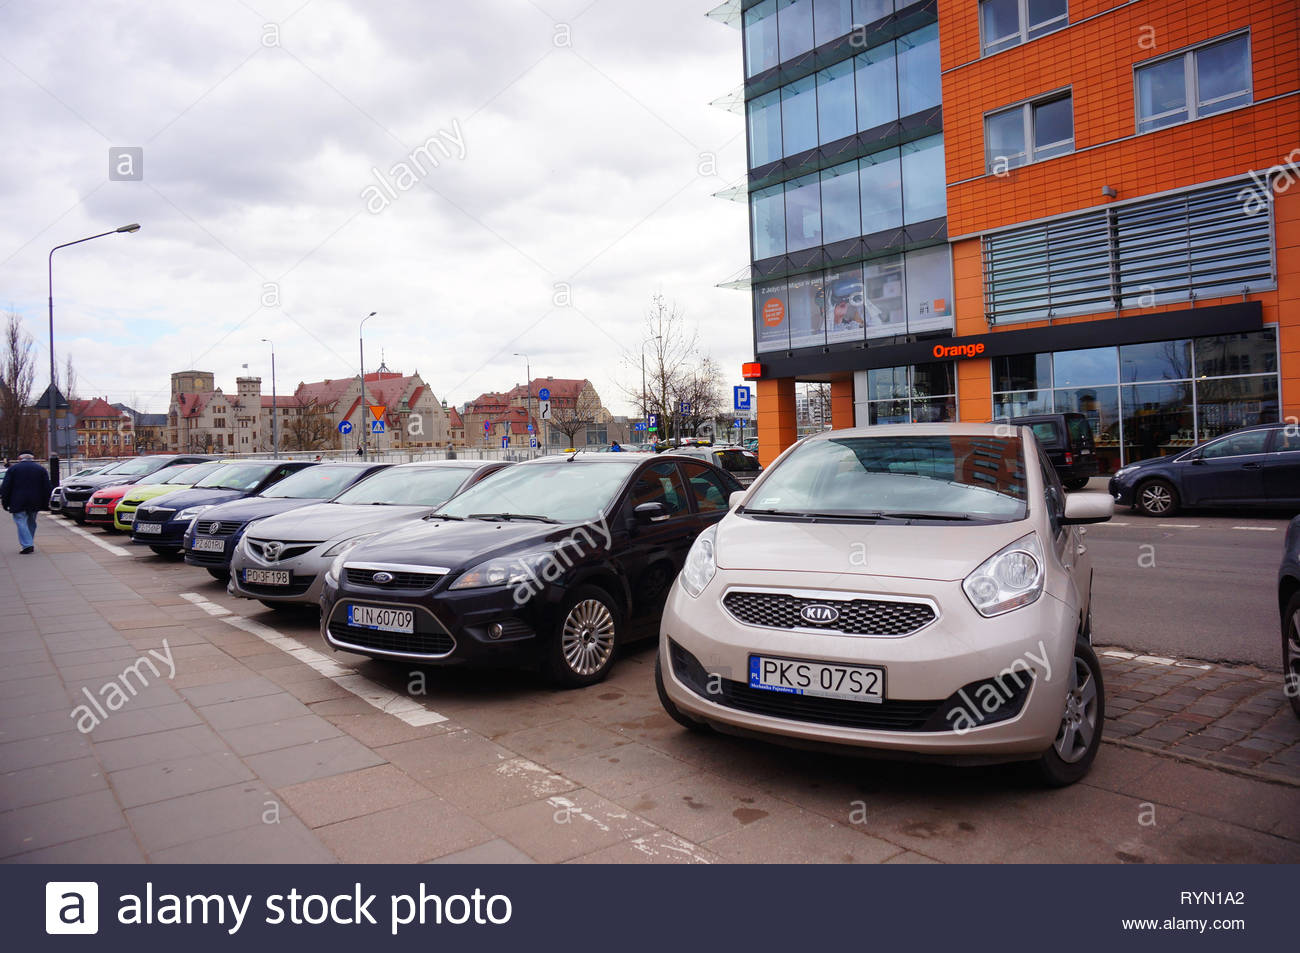 Poznan, Poland - March 8, 2019: Row of parked cars on parking spots close by the Globis office building with Orange telecommunication shop on the Slow Stock Photo